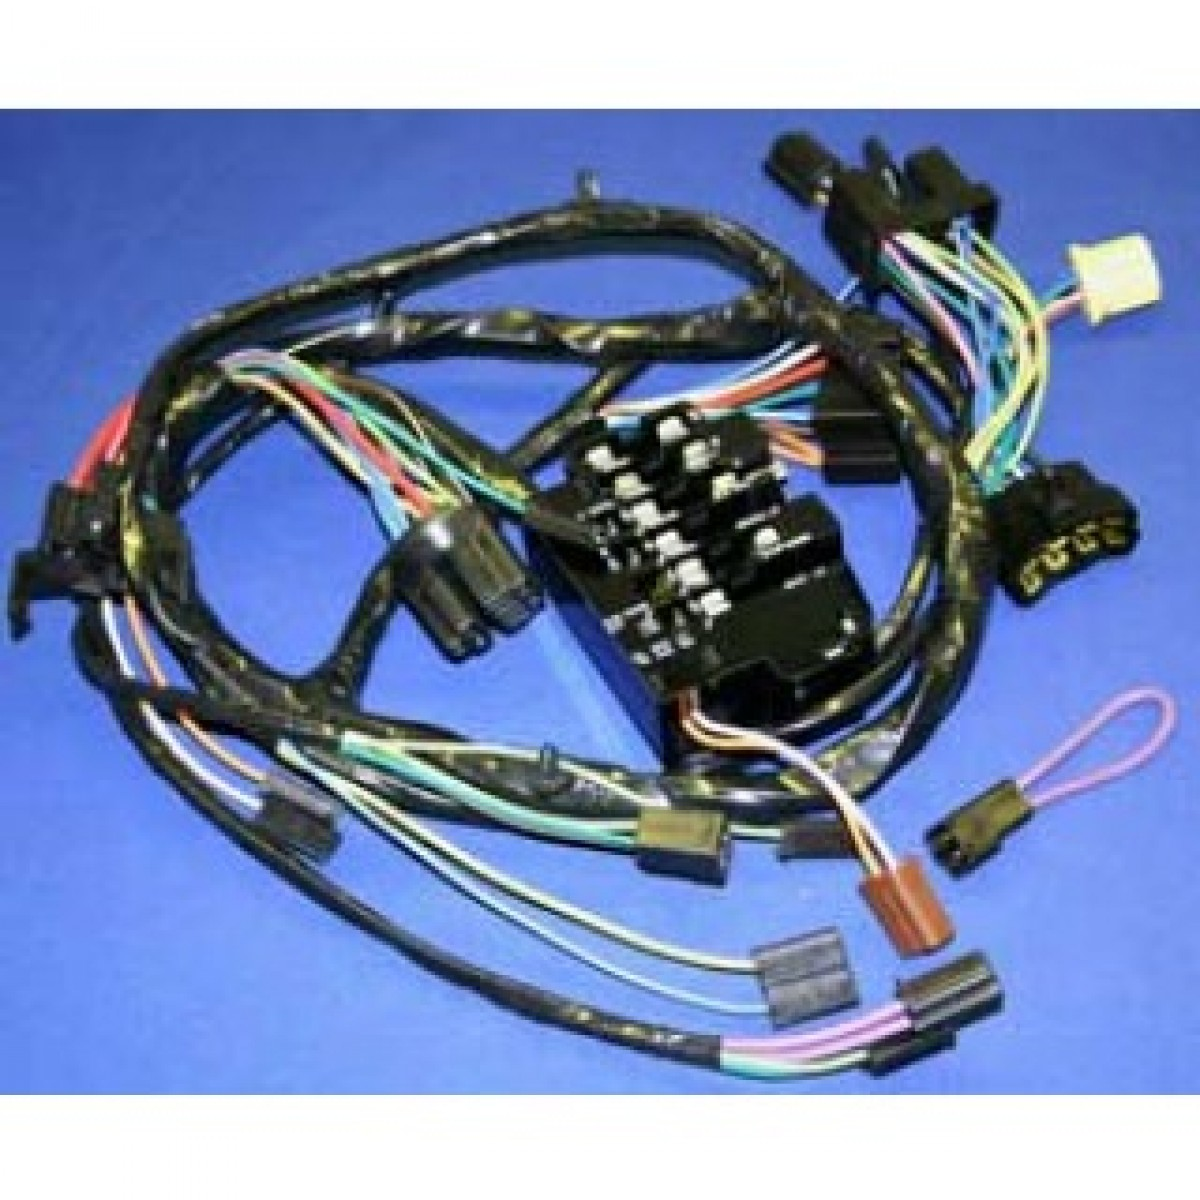 Wiring Harness For 1964 Buick Riviera Library Gto Dash Diagram